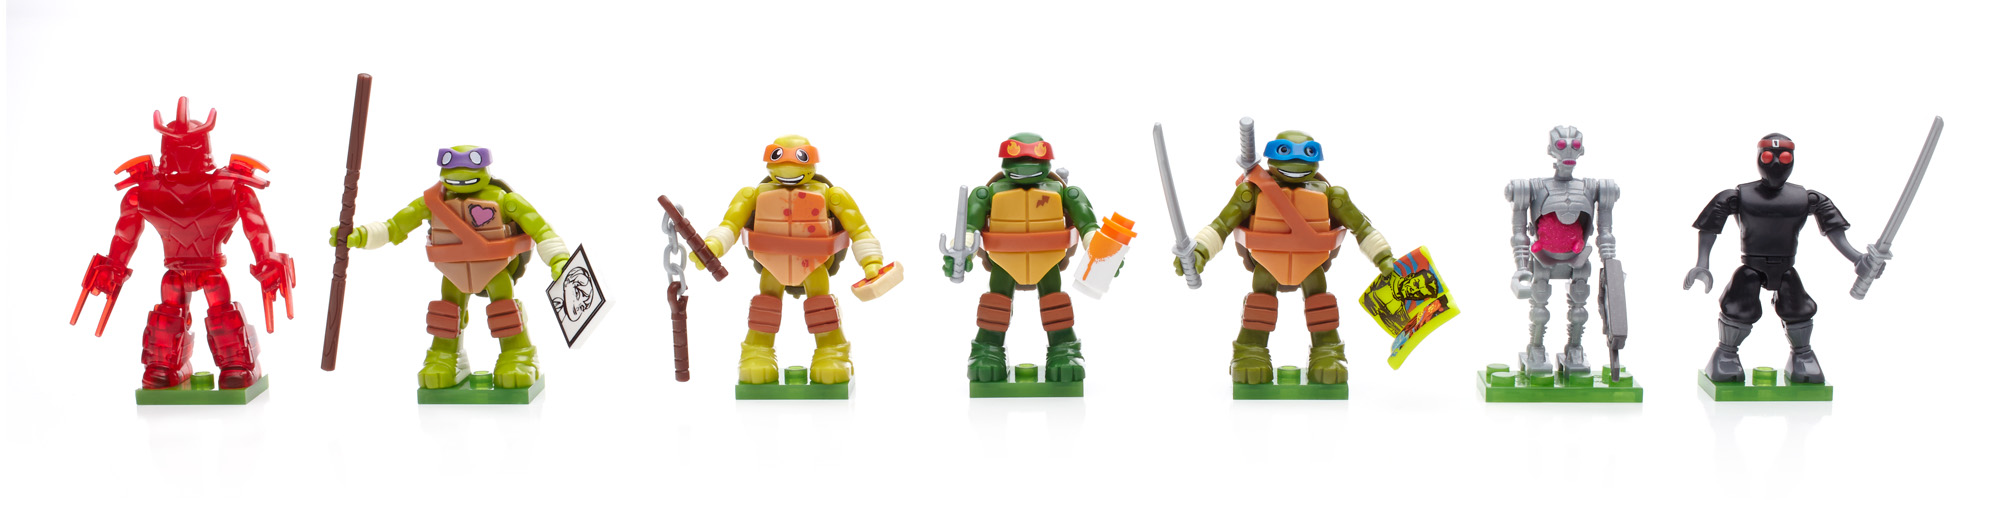 Mega Bloks Teenage Mutant Ninja Turtles Micro Action Figure Series 1 Blind Pack by Mega Bloks